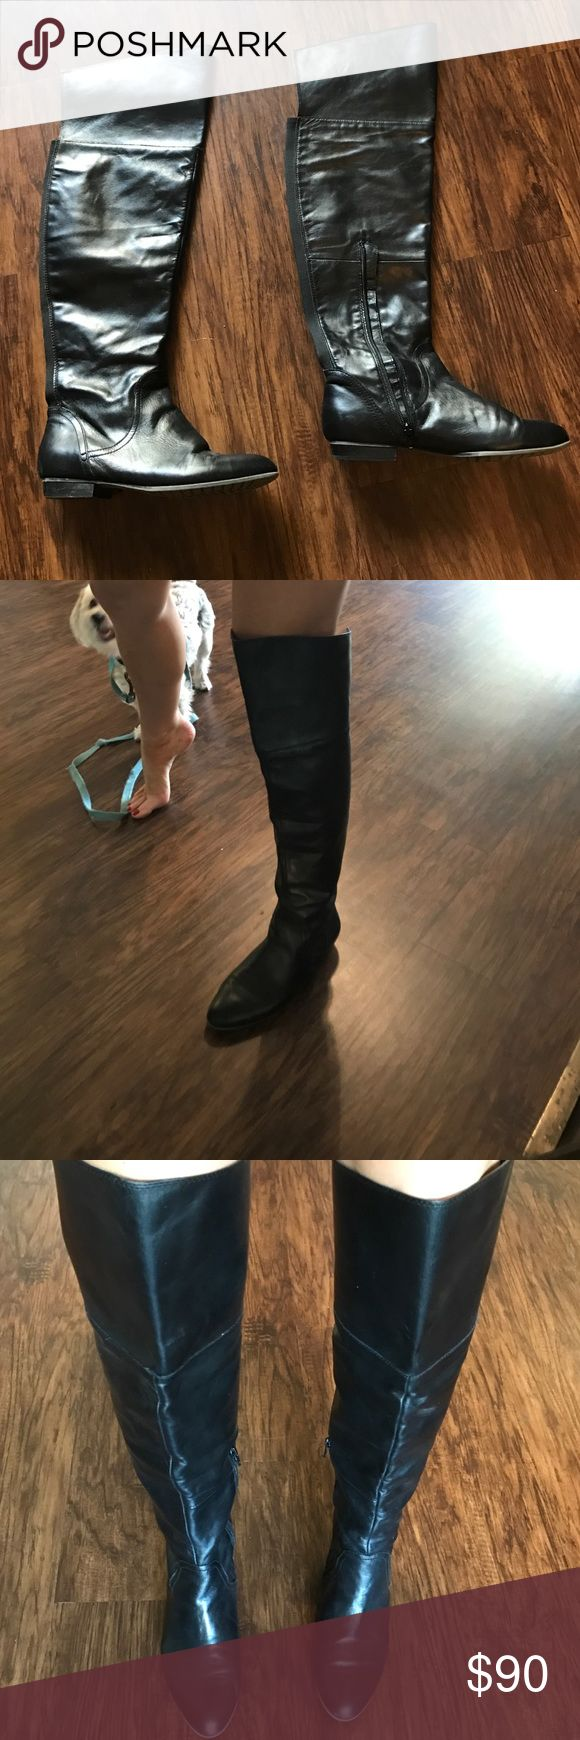 Above the knee Aldo Boots Black Leather worn but really good condition black faux leather above the knee boots from Aldo size 9 Aldo Shoes Over the Knee Boots